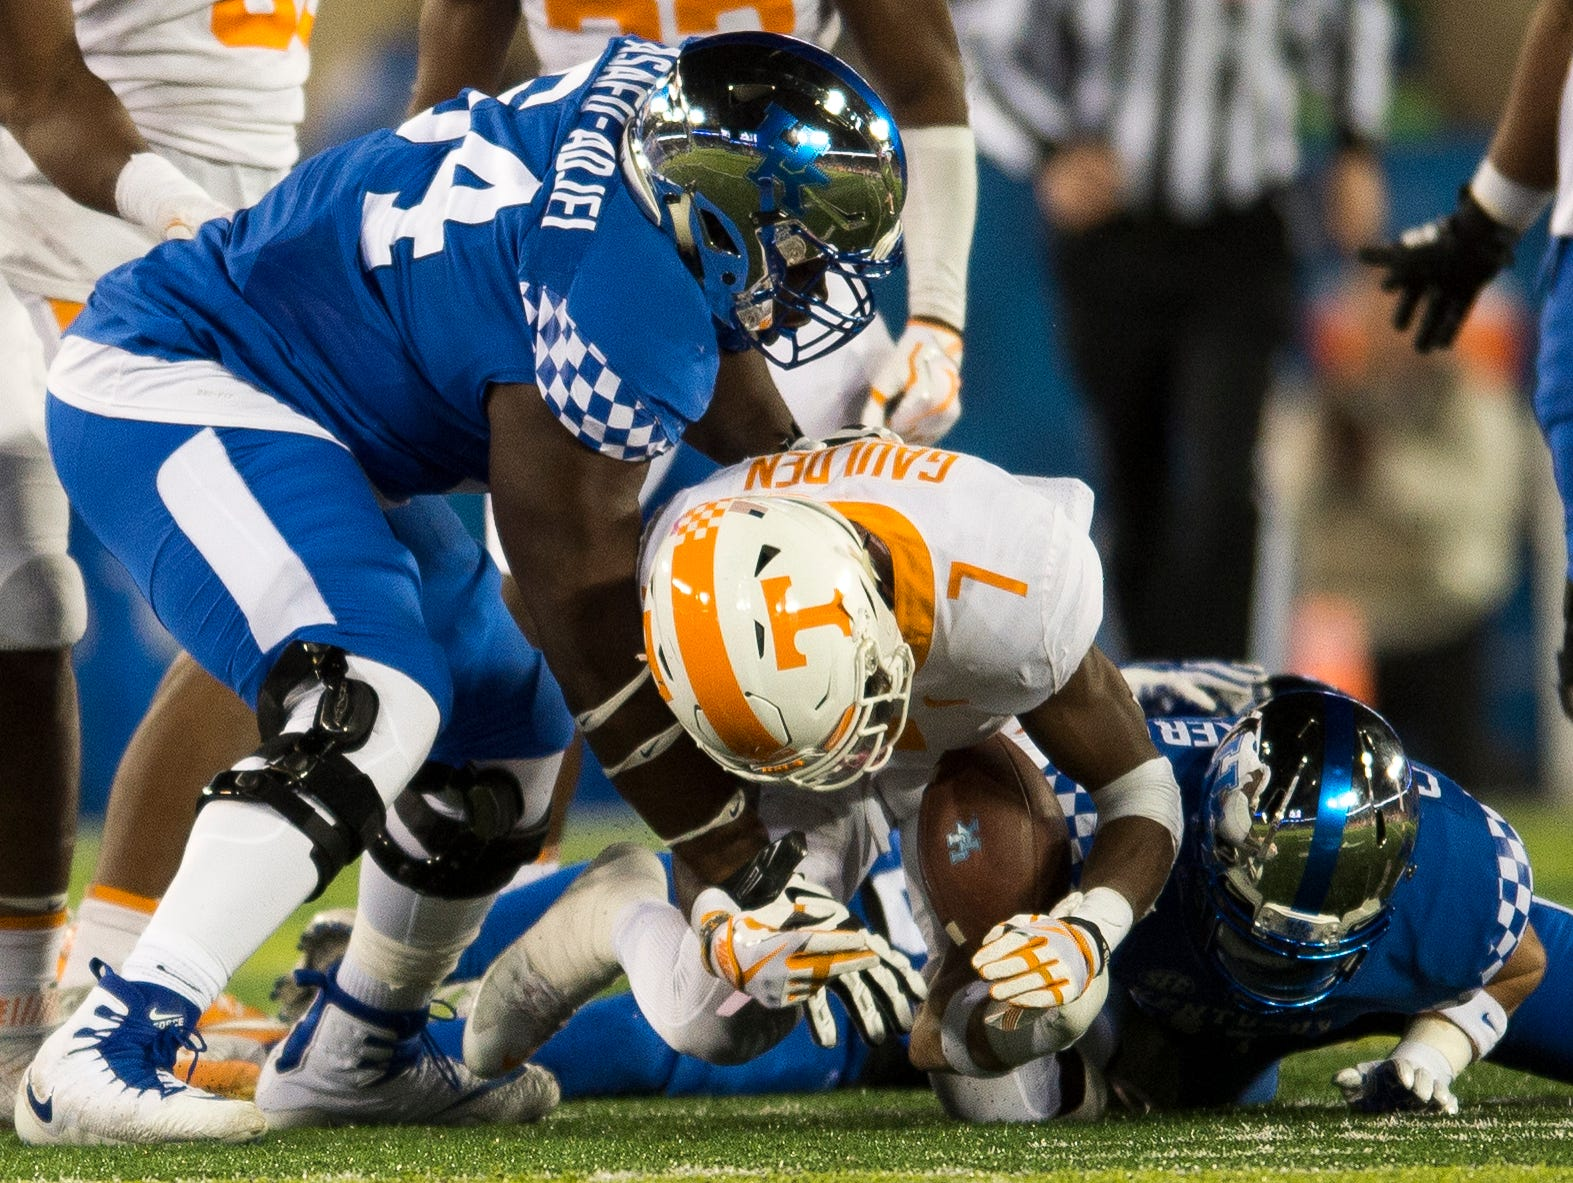 Tennessee defensive back Rashaan Gaulden (7) comes up with the fumble during Tennessee's game against Kentucky at Kroger Field in Lexington on Saturday, Oct. 28, 2017.